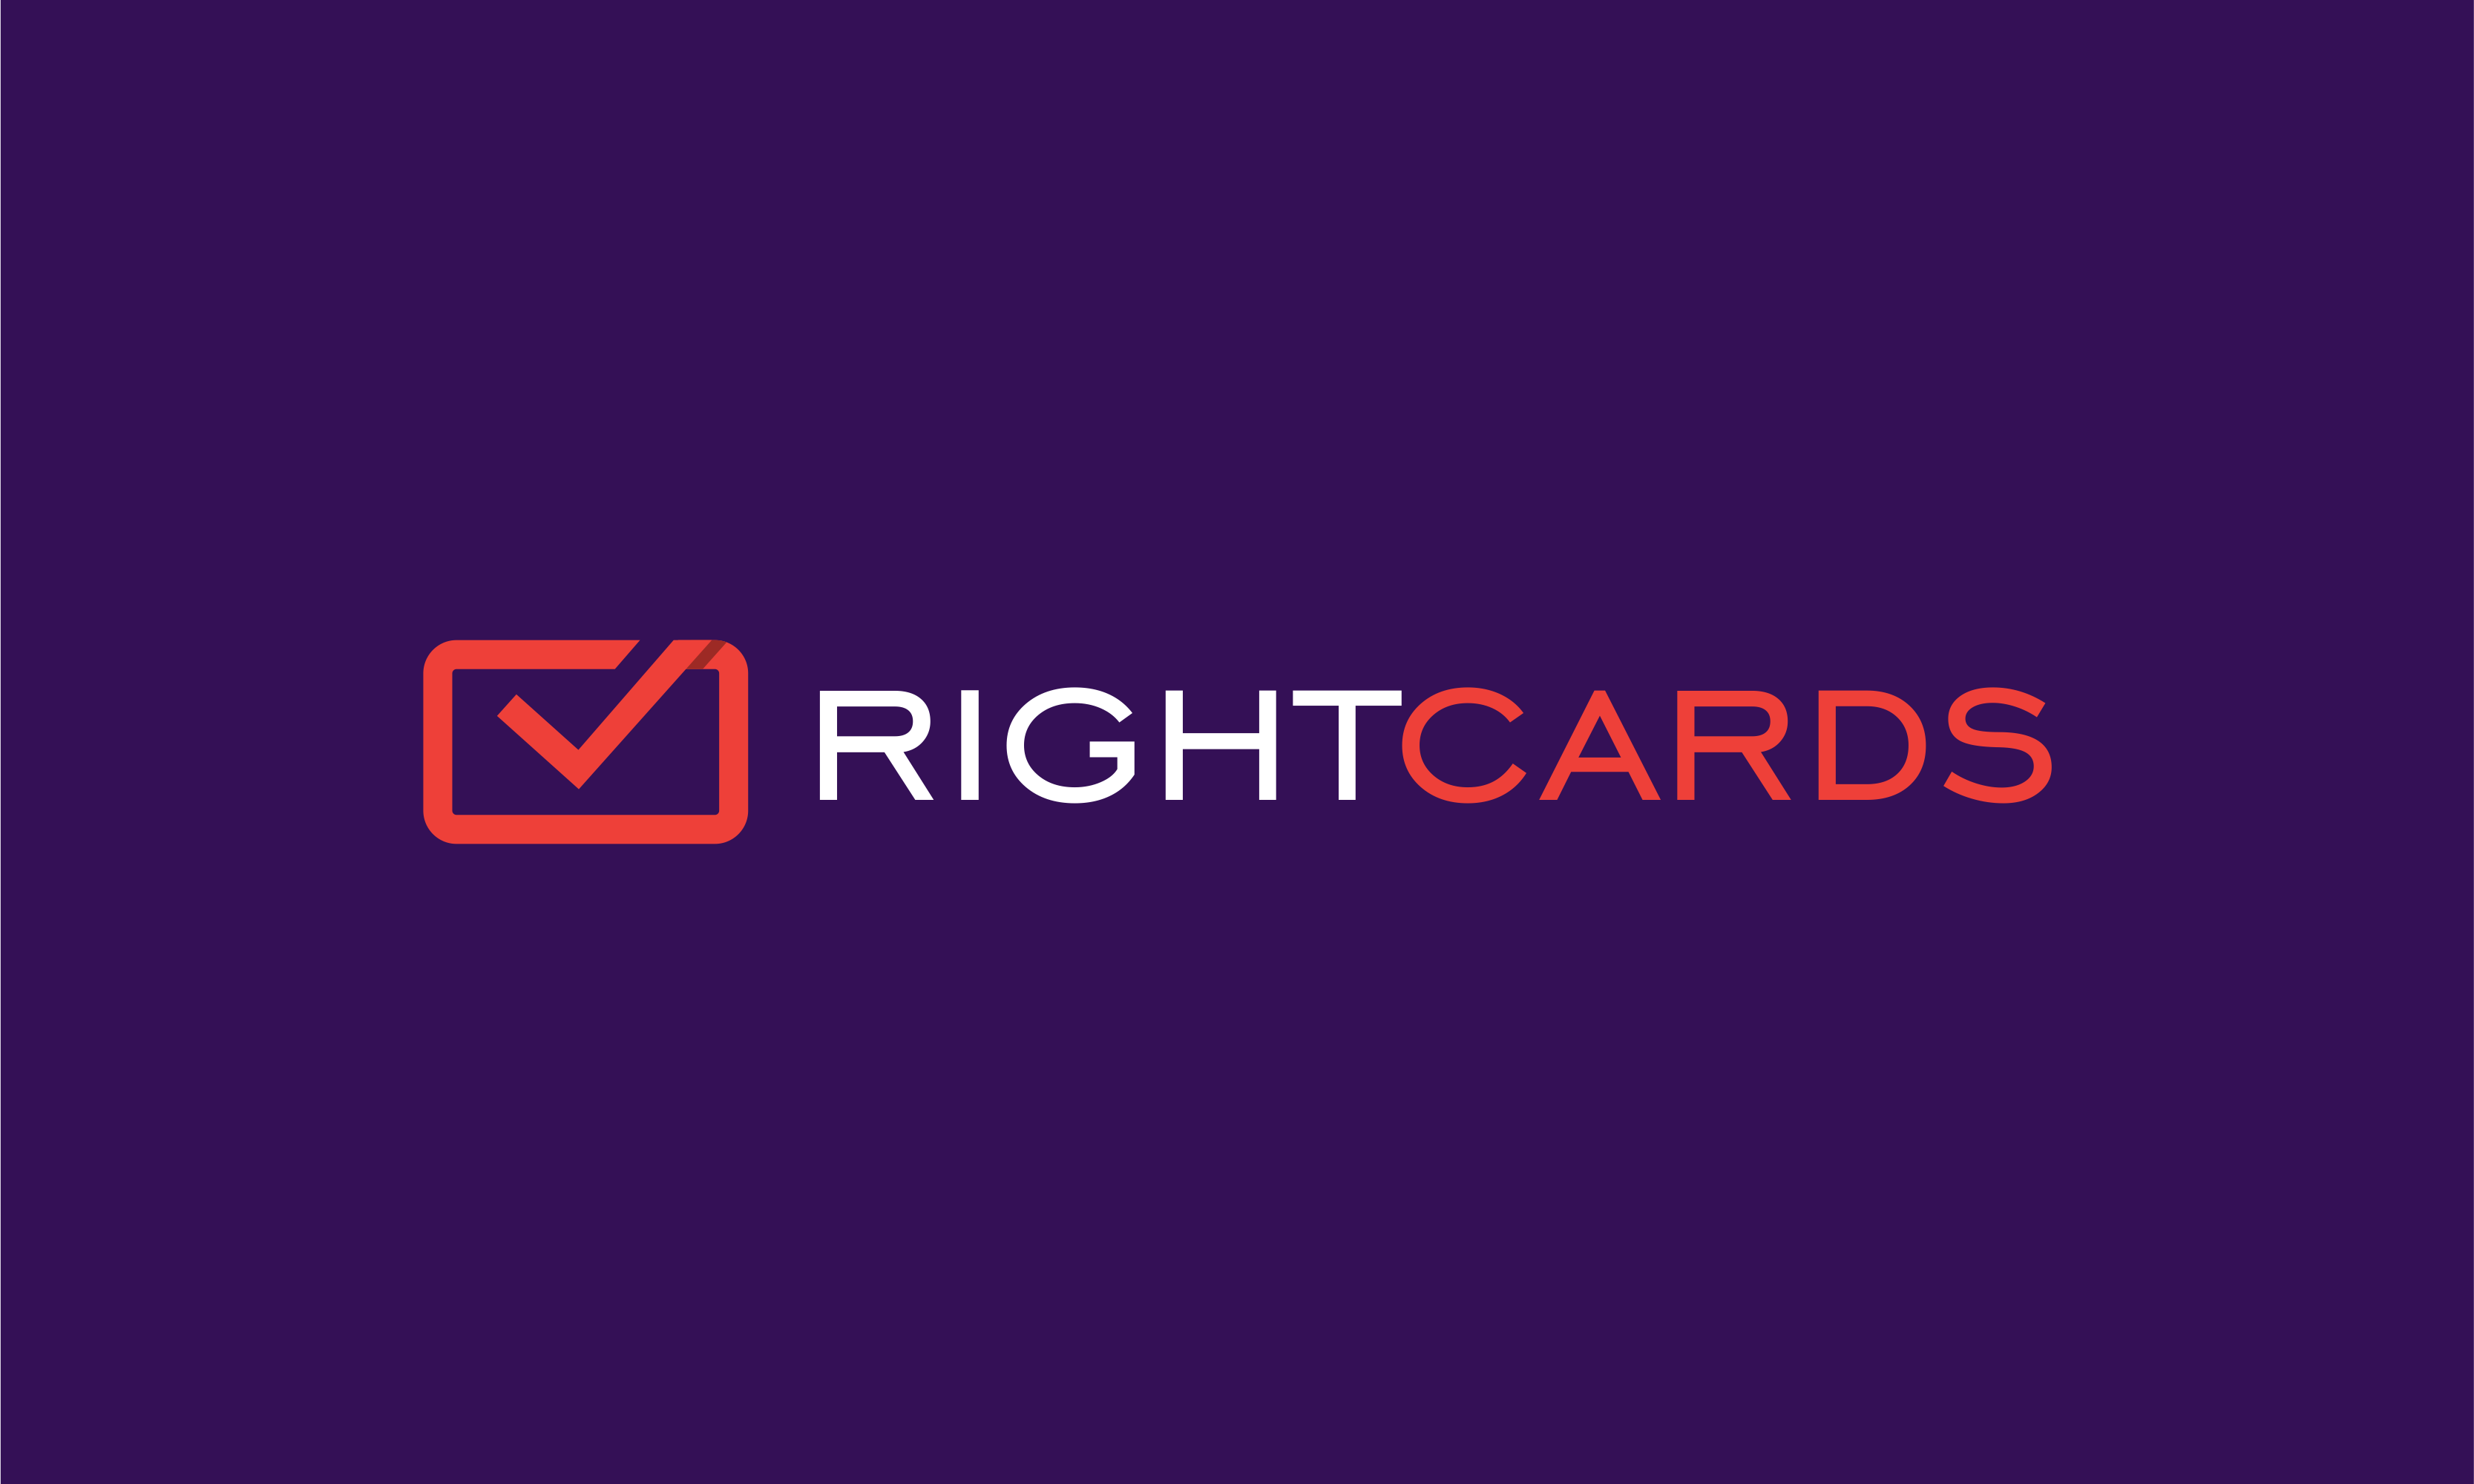 Rightcards